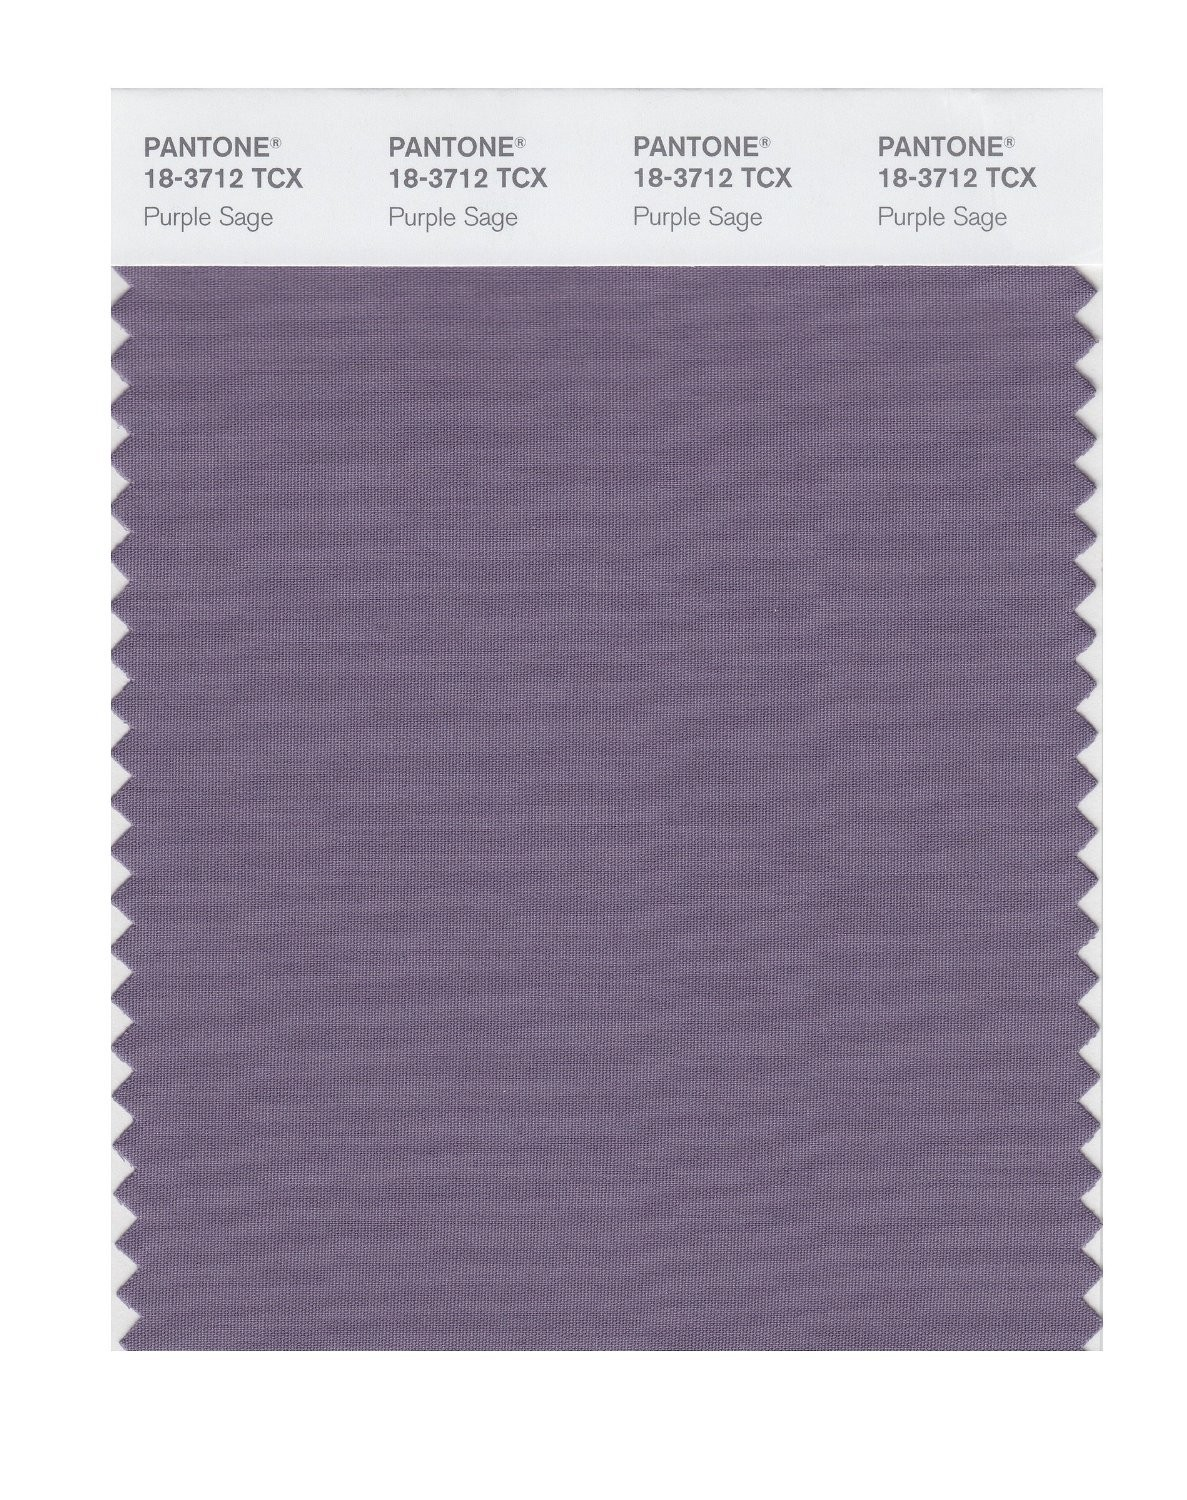 Pantone 18-3712 TCX Swatch Card Purple Sage